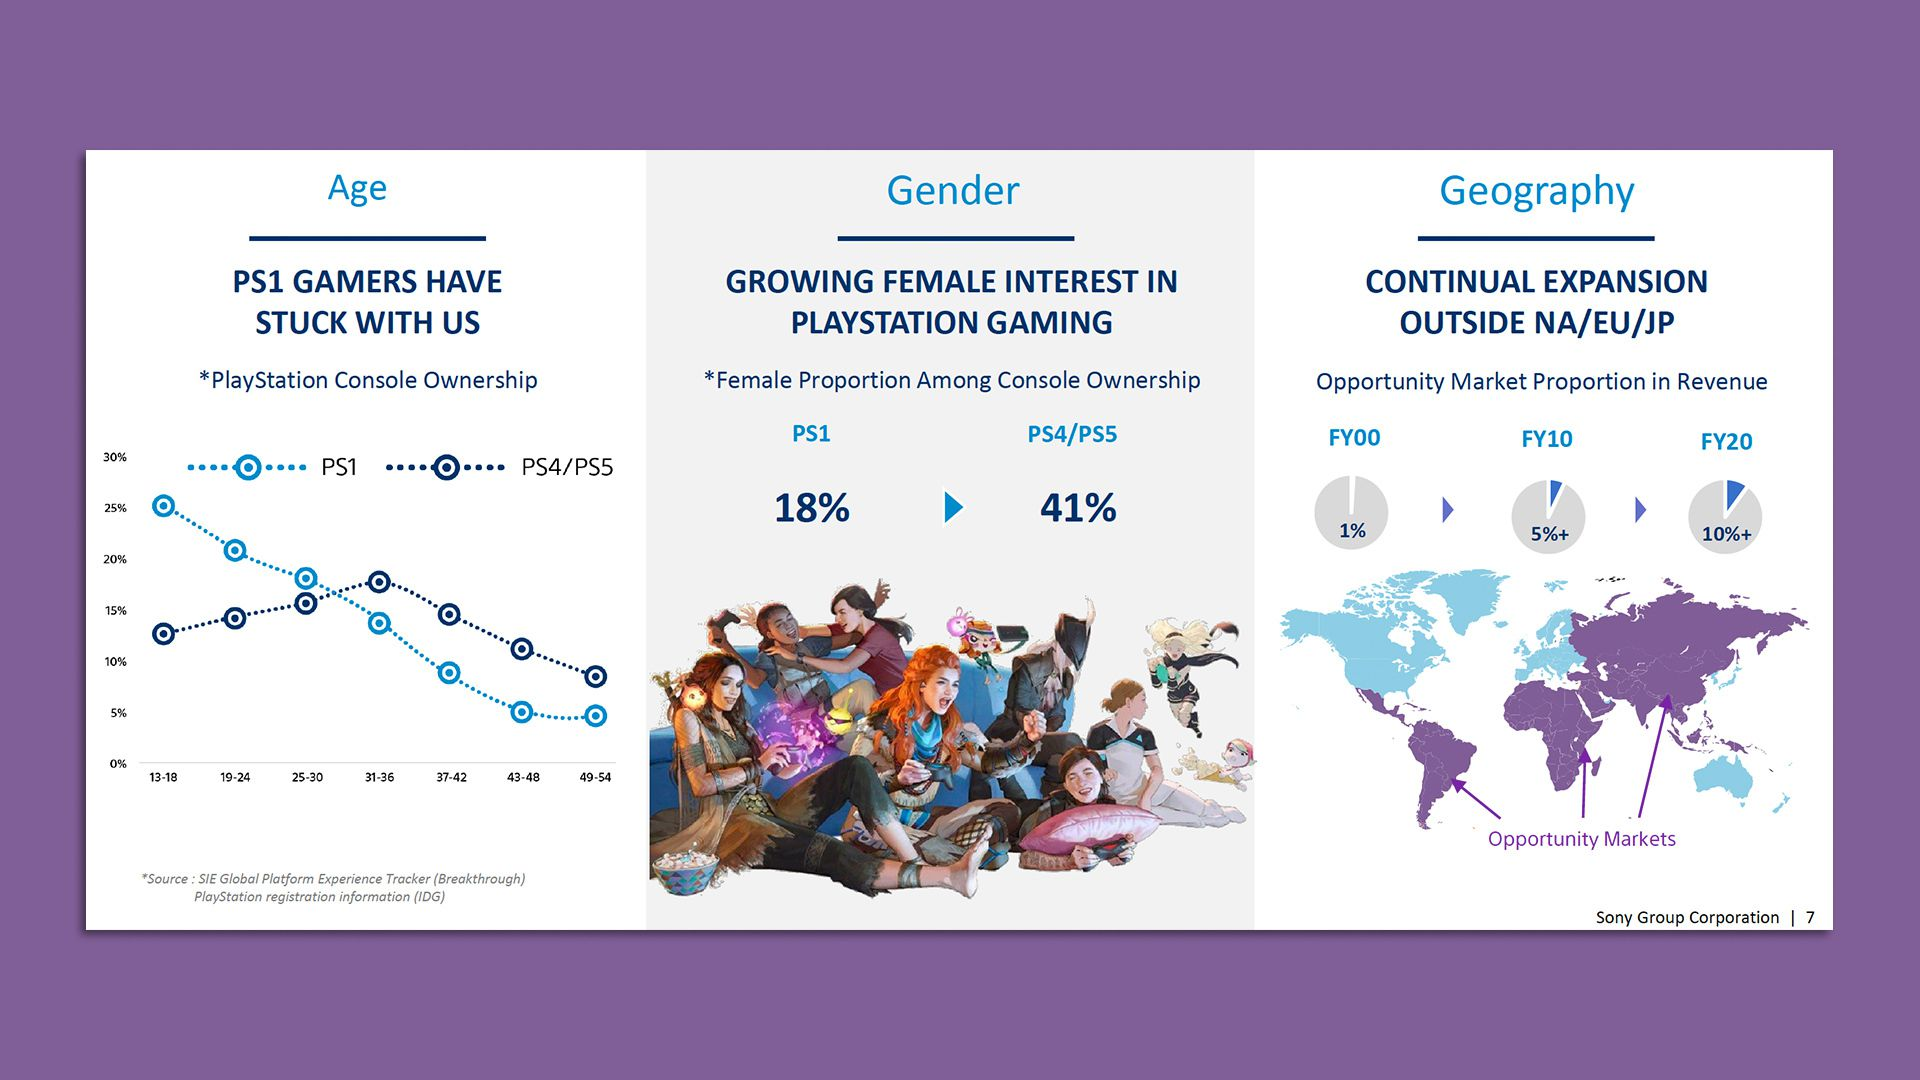 41% of PS4 and PS5 owners are female